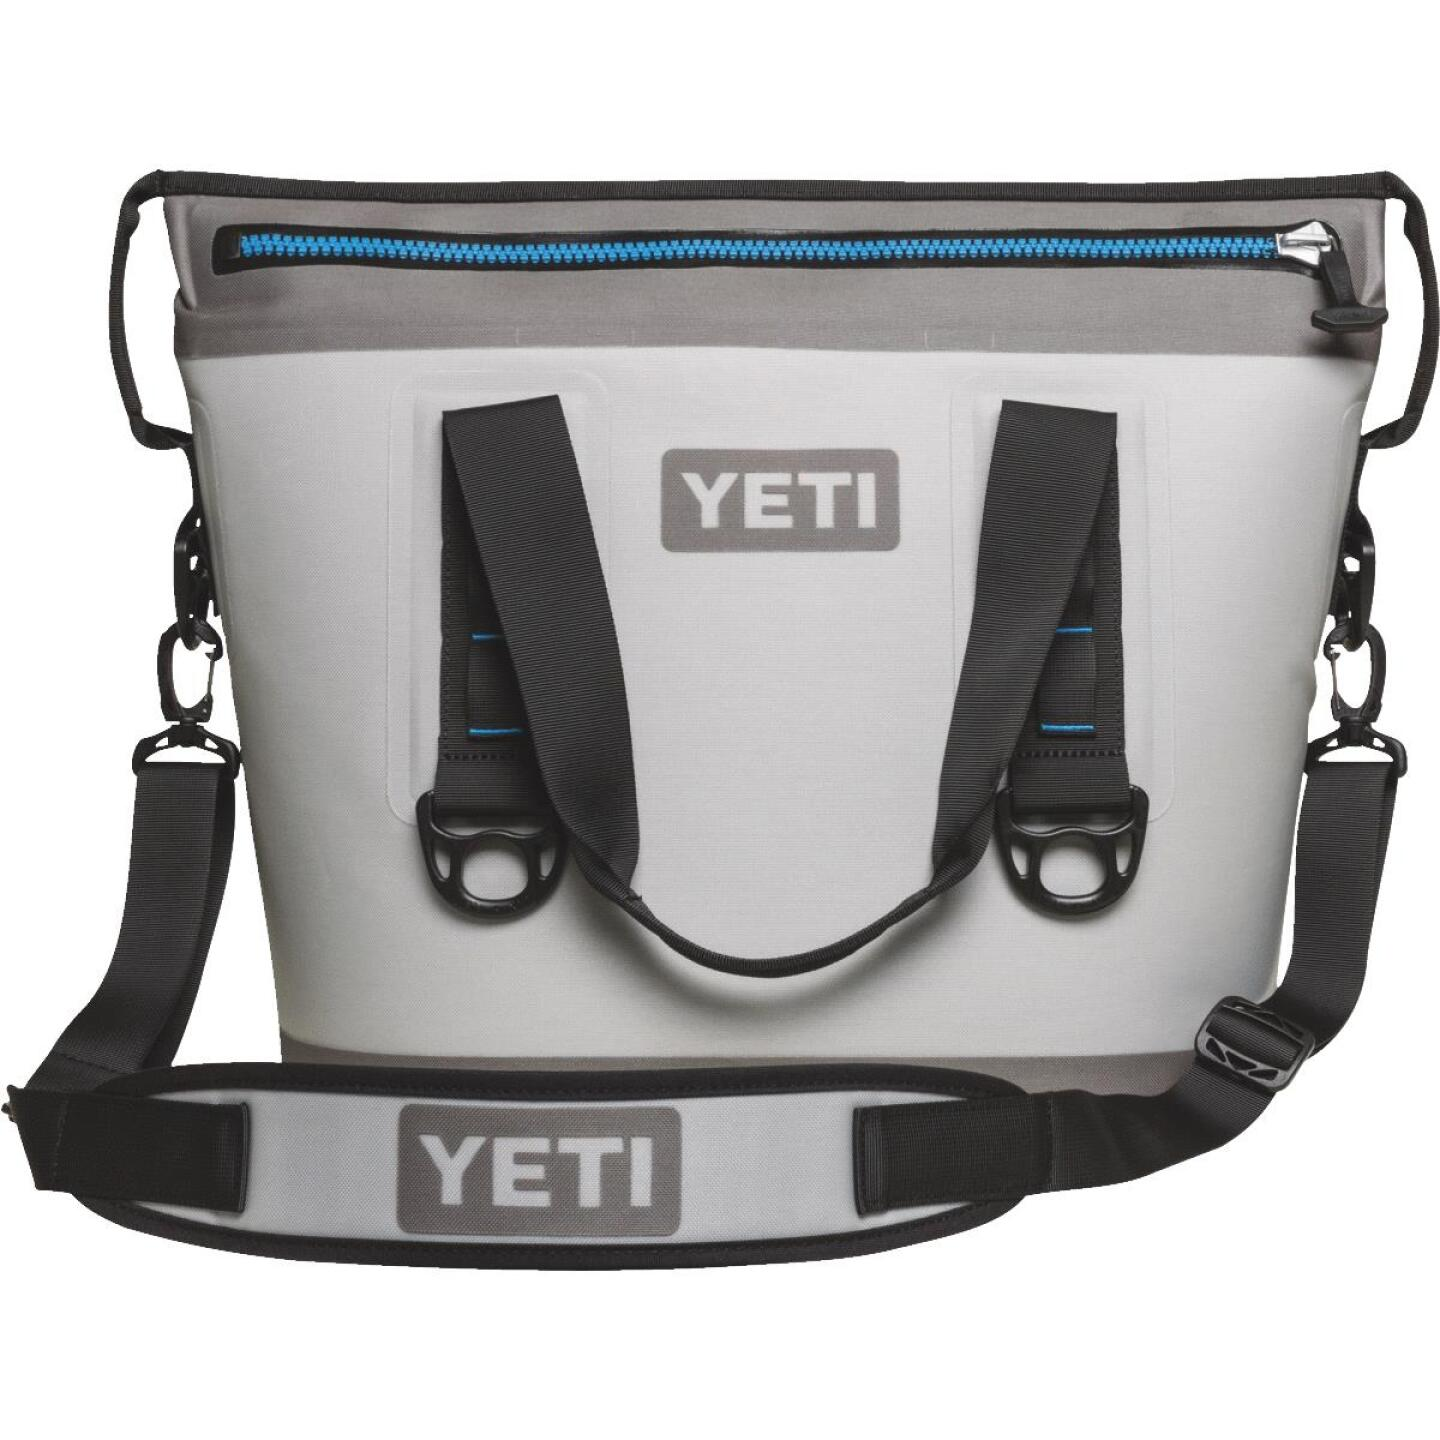 Yeti Hopper Two 20 Gray Soft-Side Cooler (16-Can) Image 1